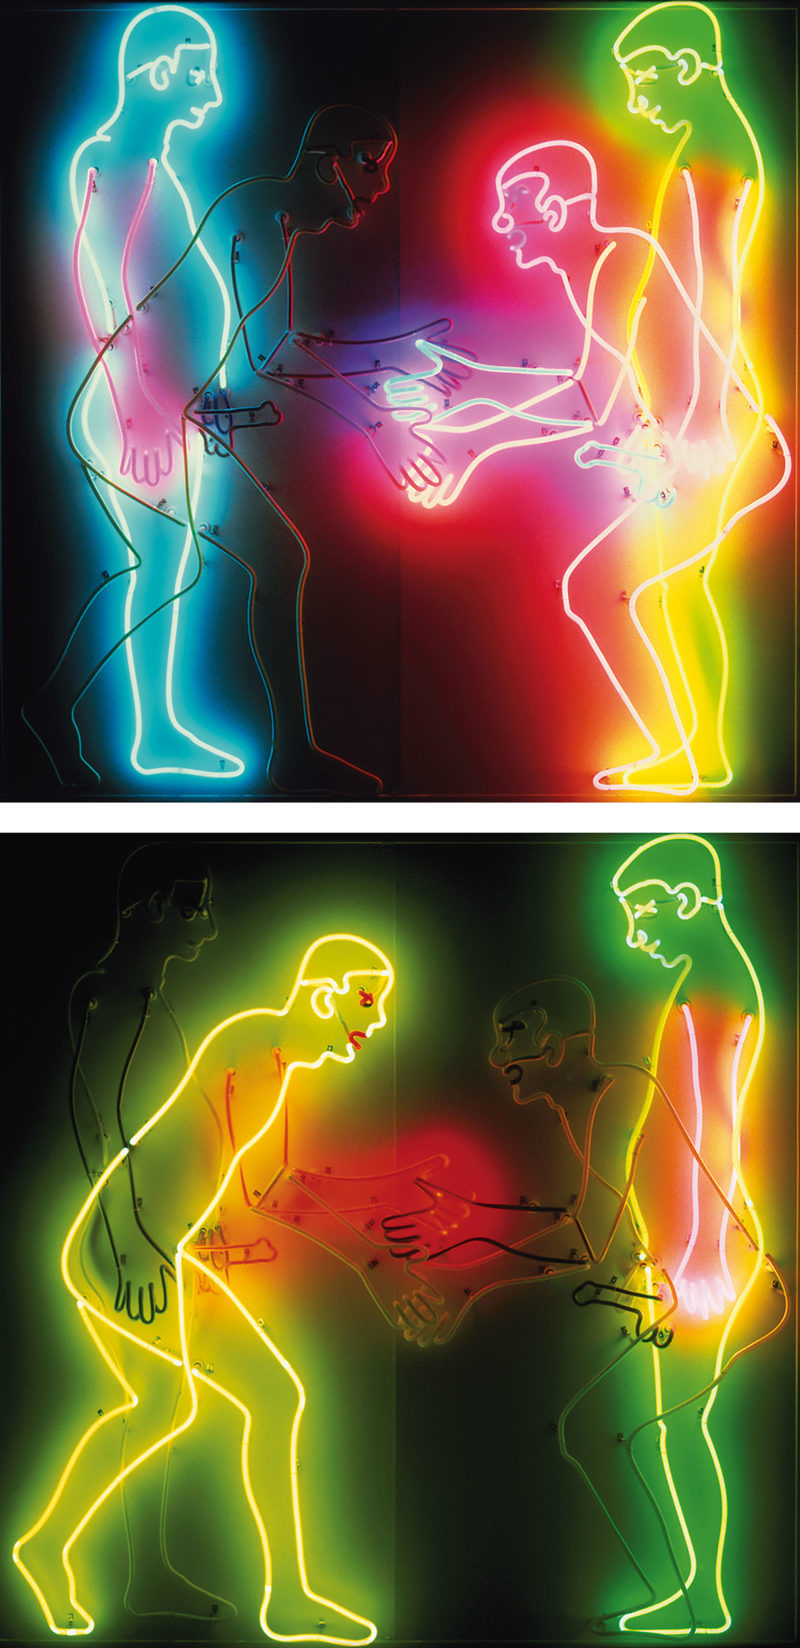 Bruce Nauman - Welcome (Shaking Hands), 1985, neon and glass tubing, 182.8 x 182.8 x 25.4 cm